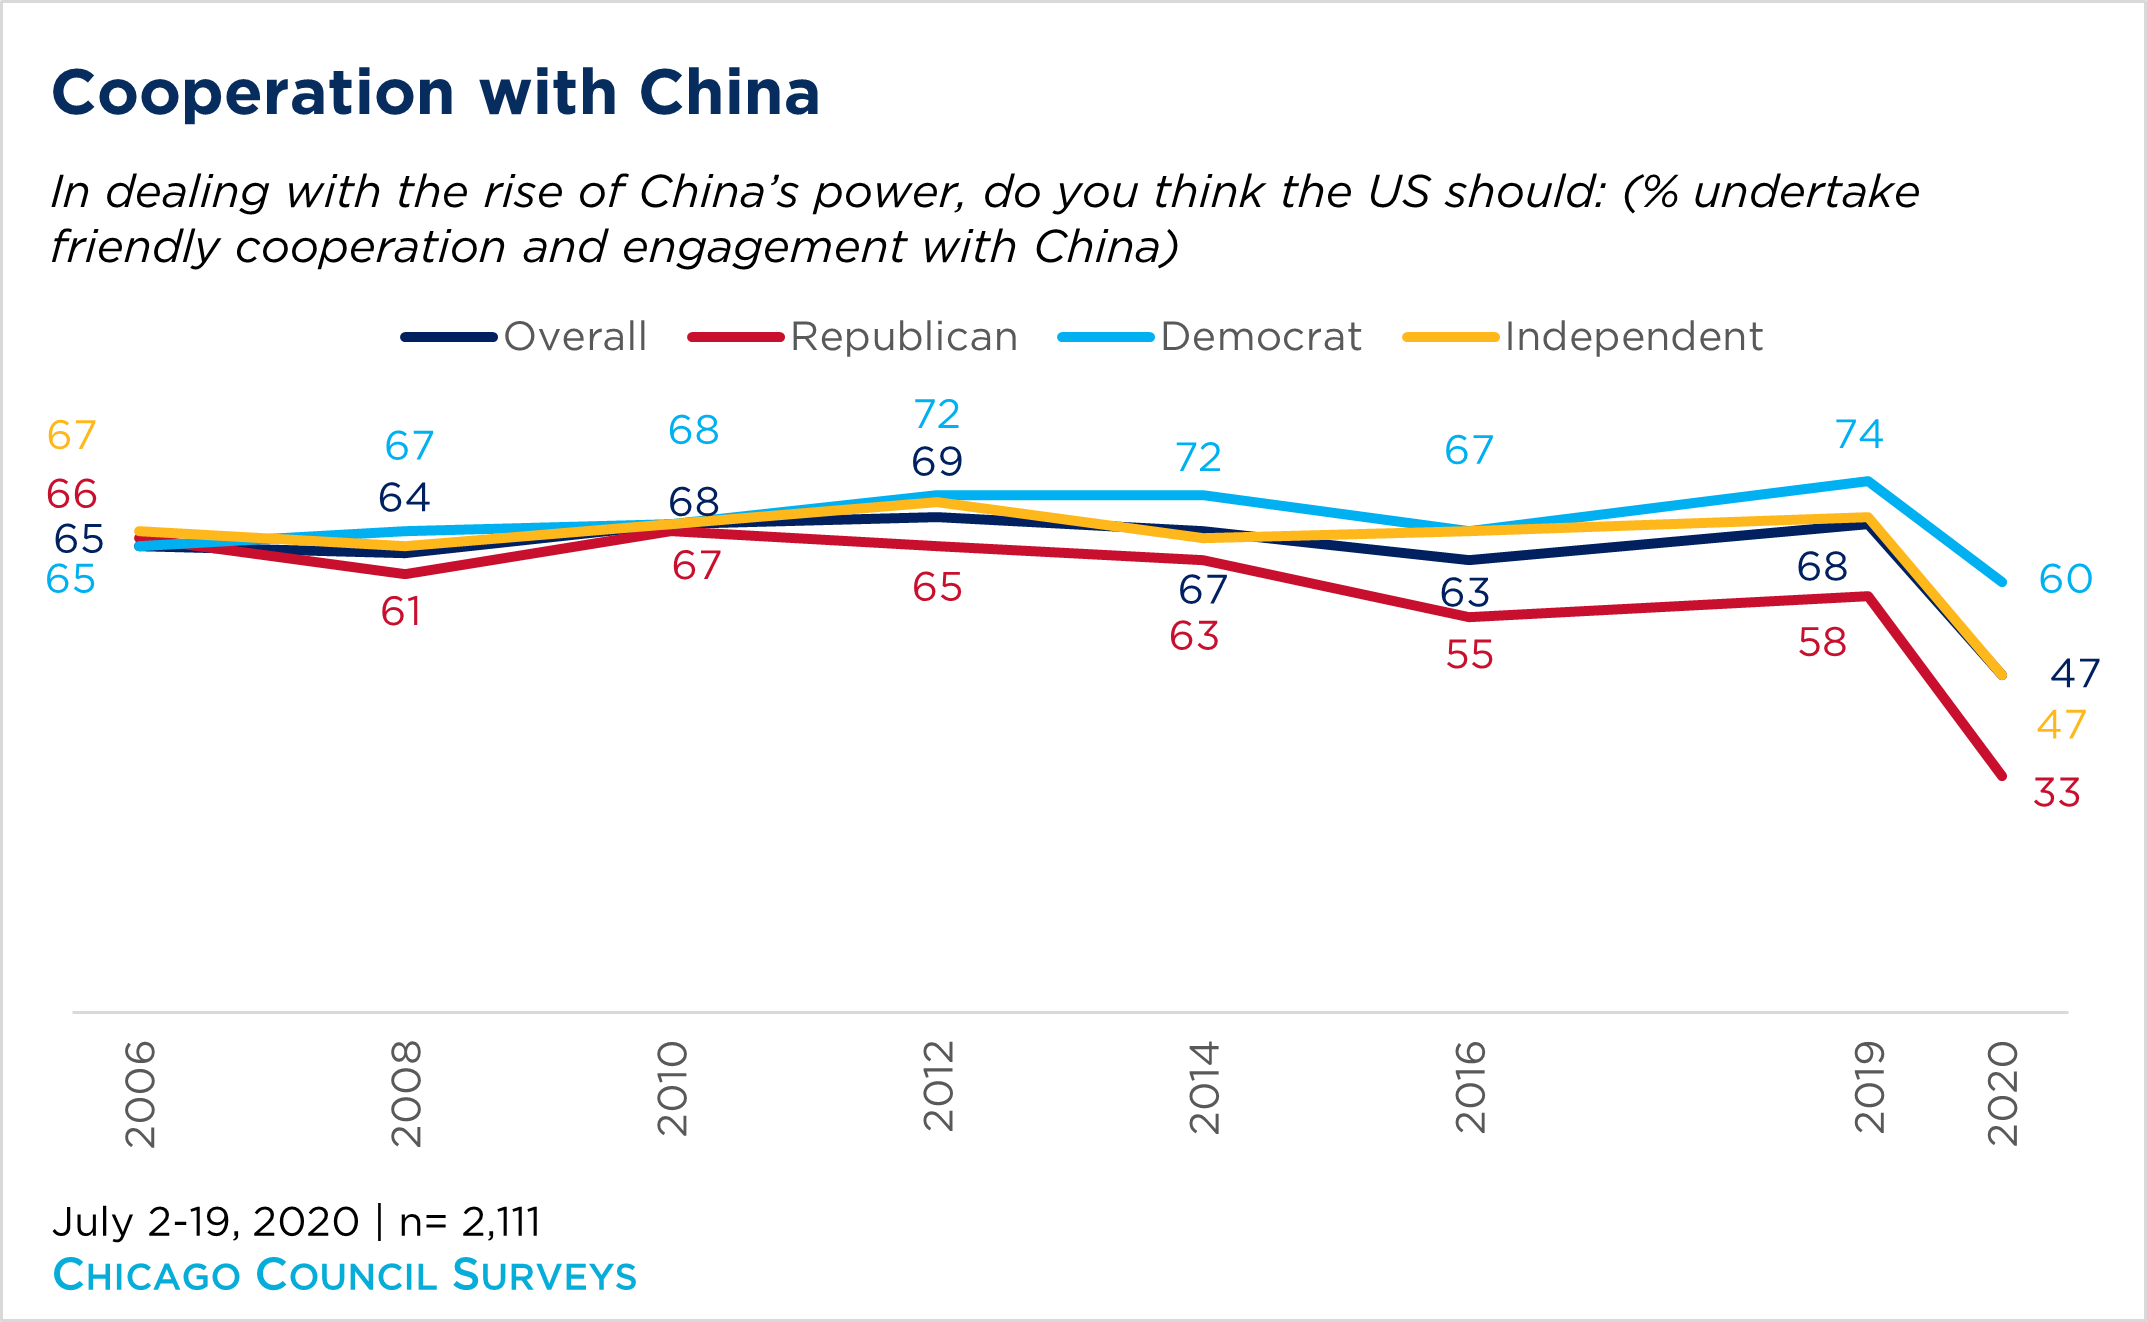 Chart showing how Americans feel about cooperating with China